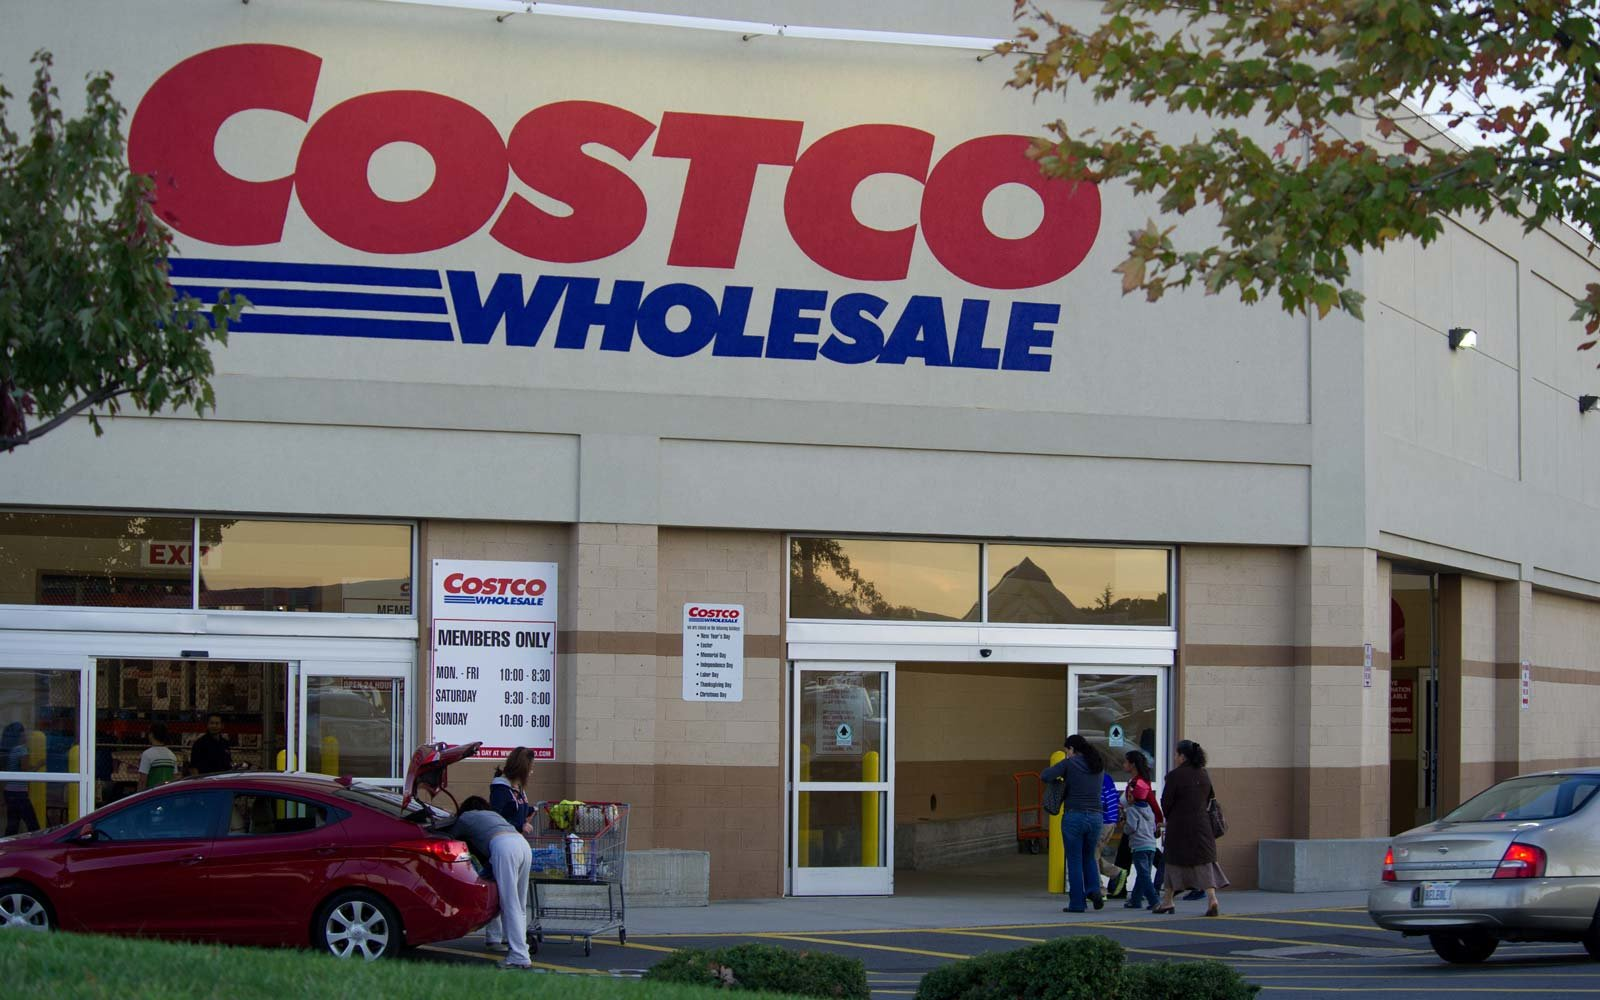 A shopper loads items into her car after shopping at Costco Wholesale Club in Manassas, Virginia